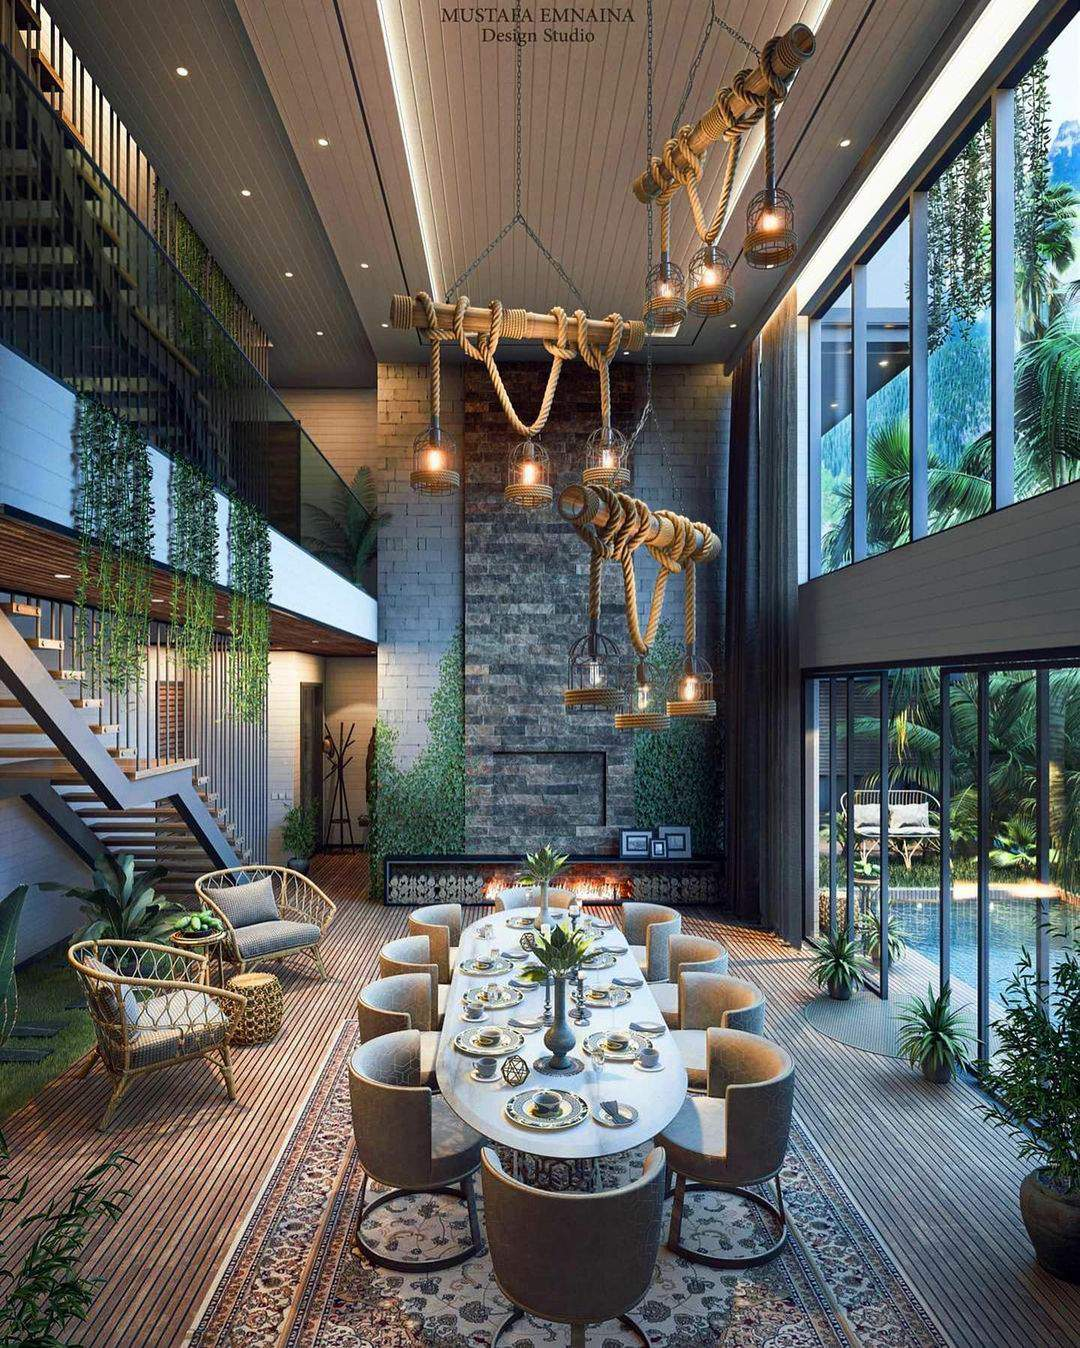 35 Beautiful Home Design Pictures & Ideas images 34